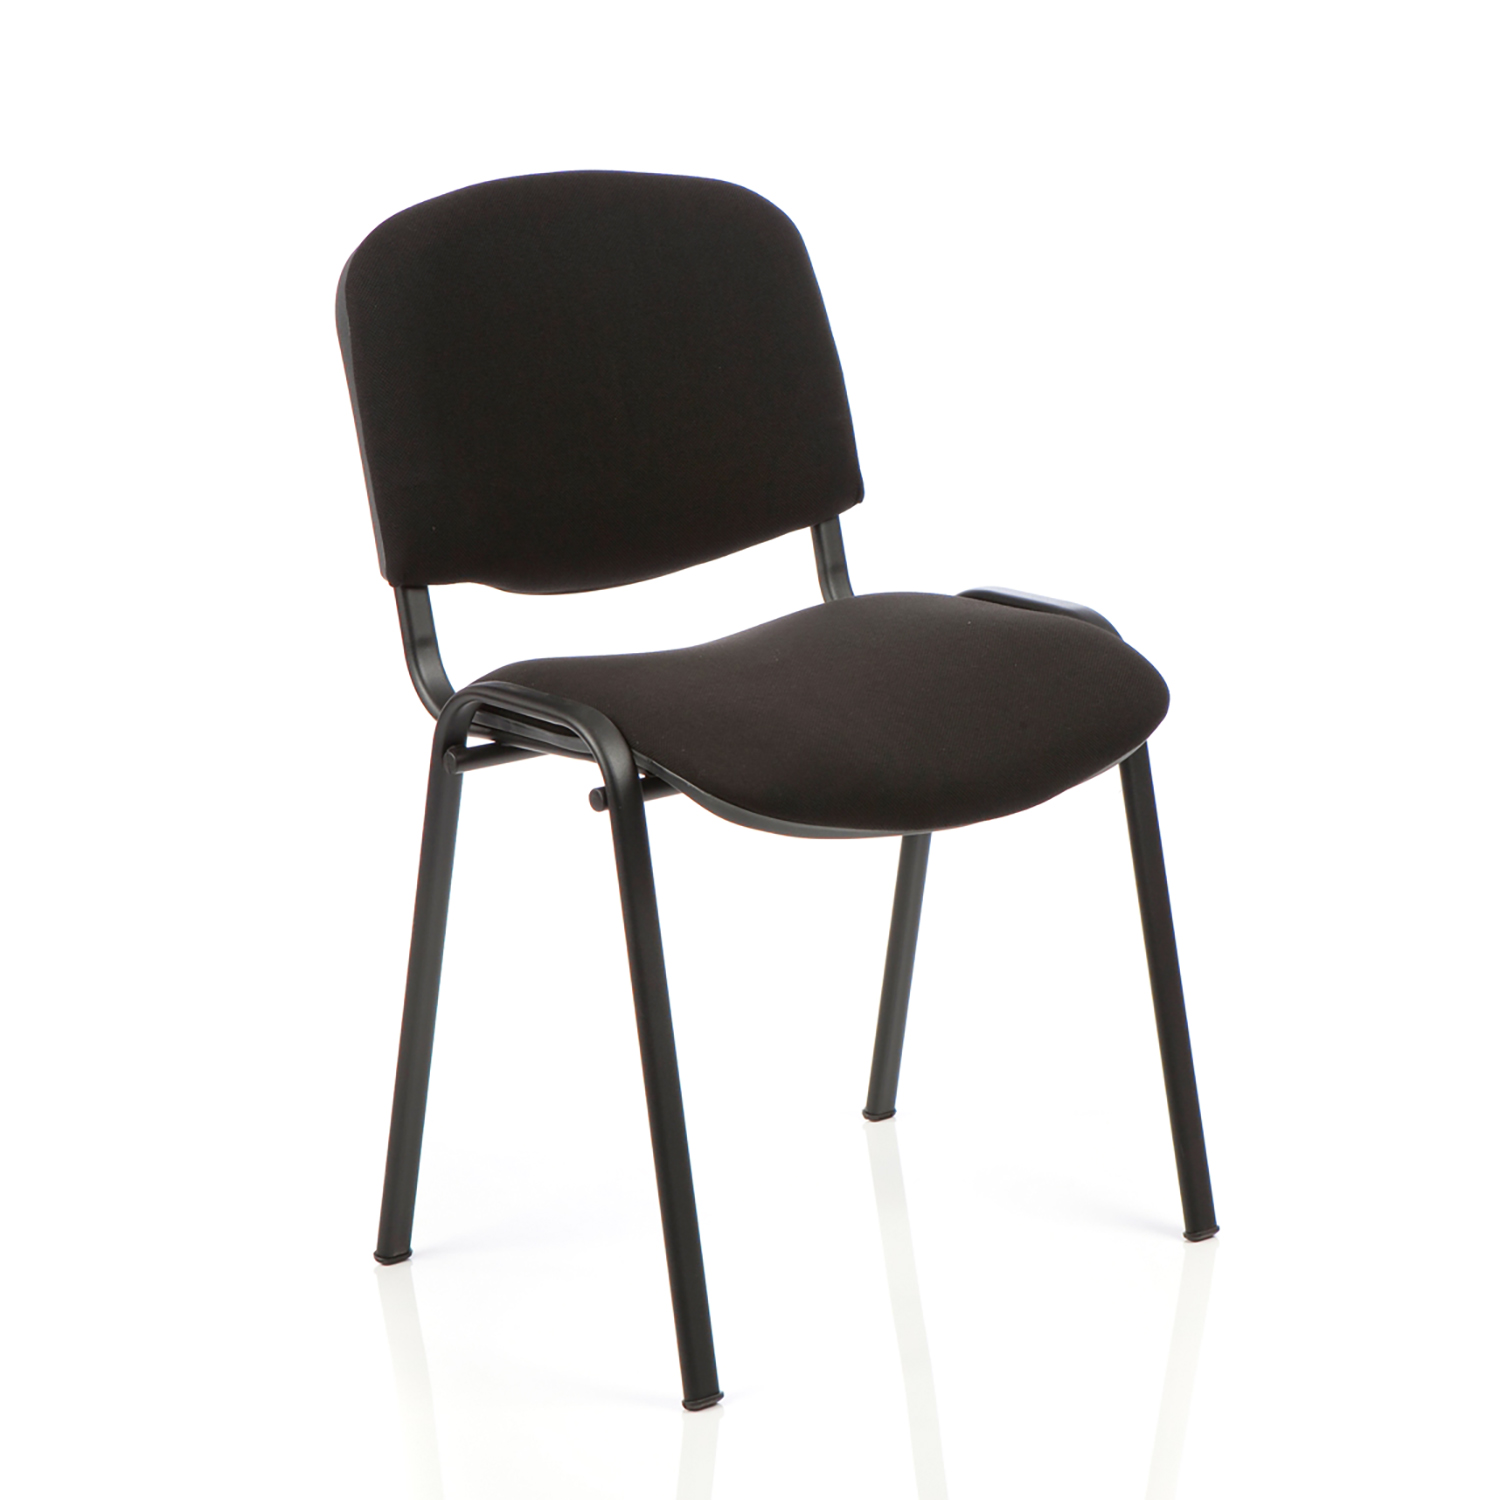 Auditorium or stadium or special use seating Trexus Stacking Chair Black Frame Black 470x420x500mm Ref SP438150